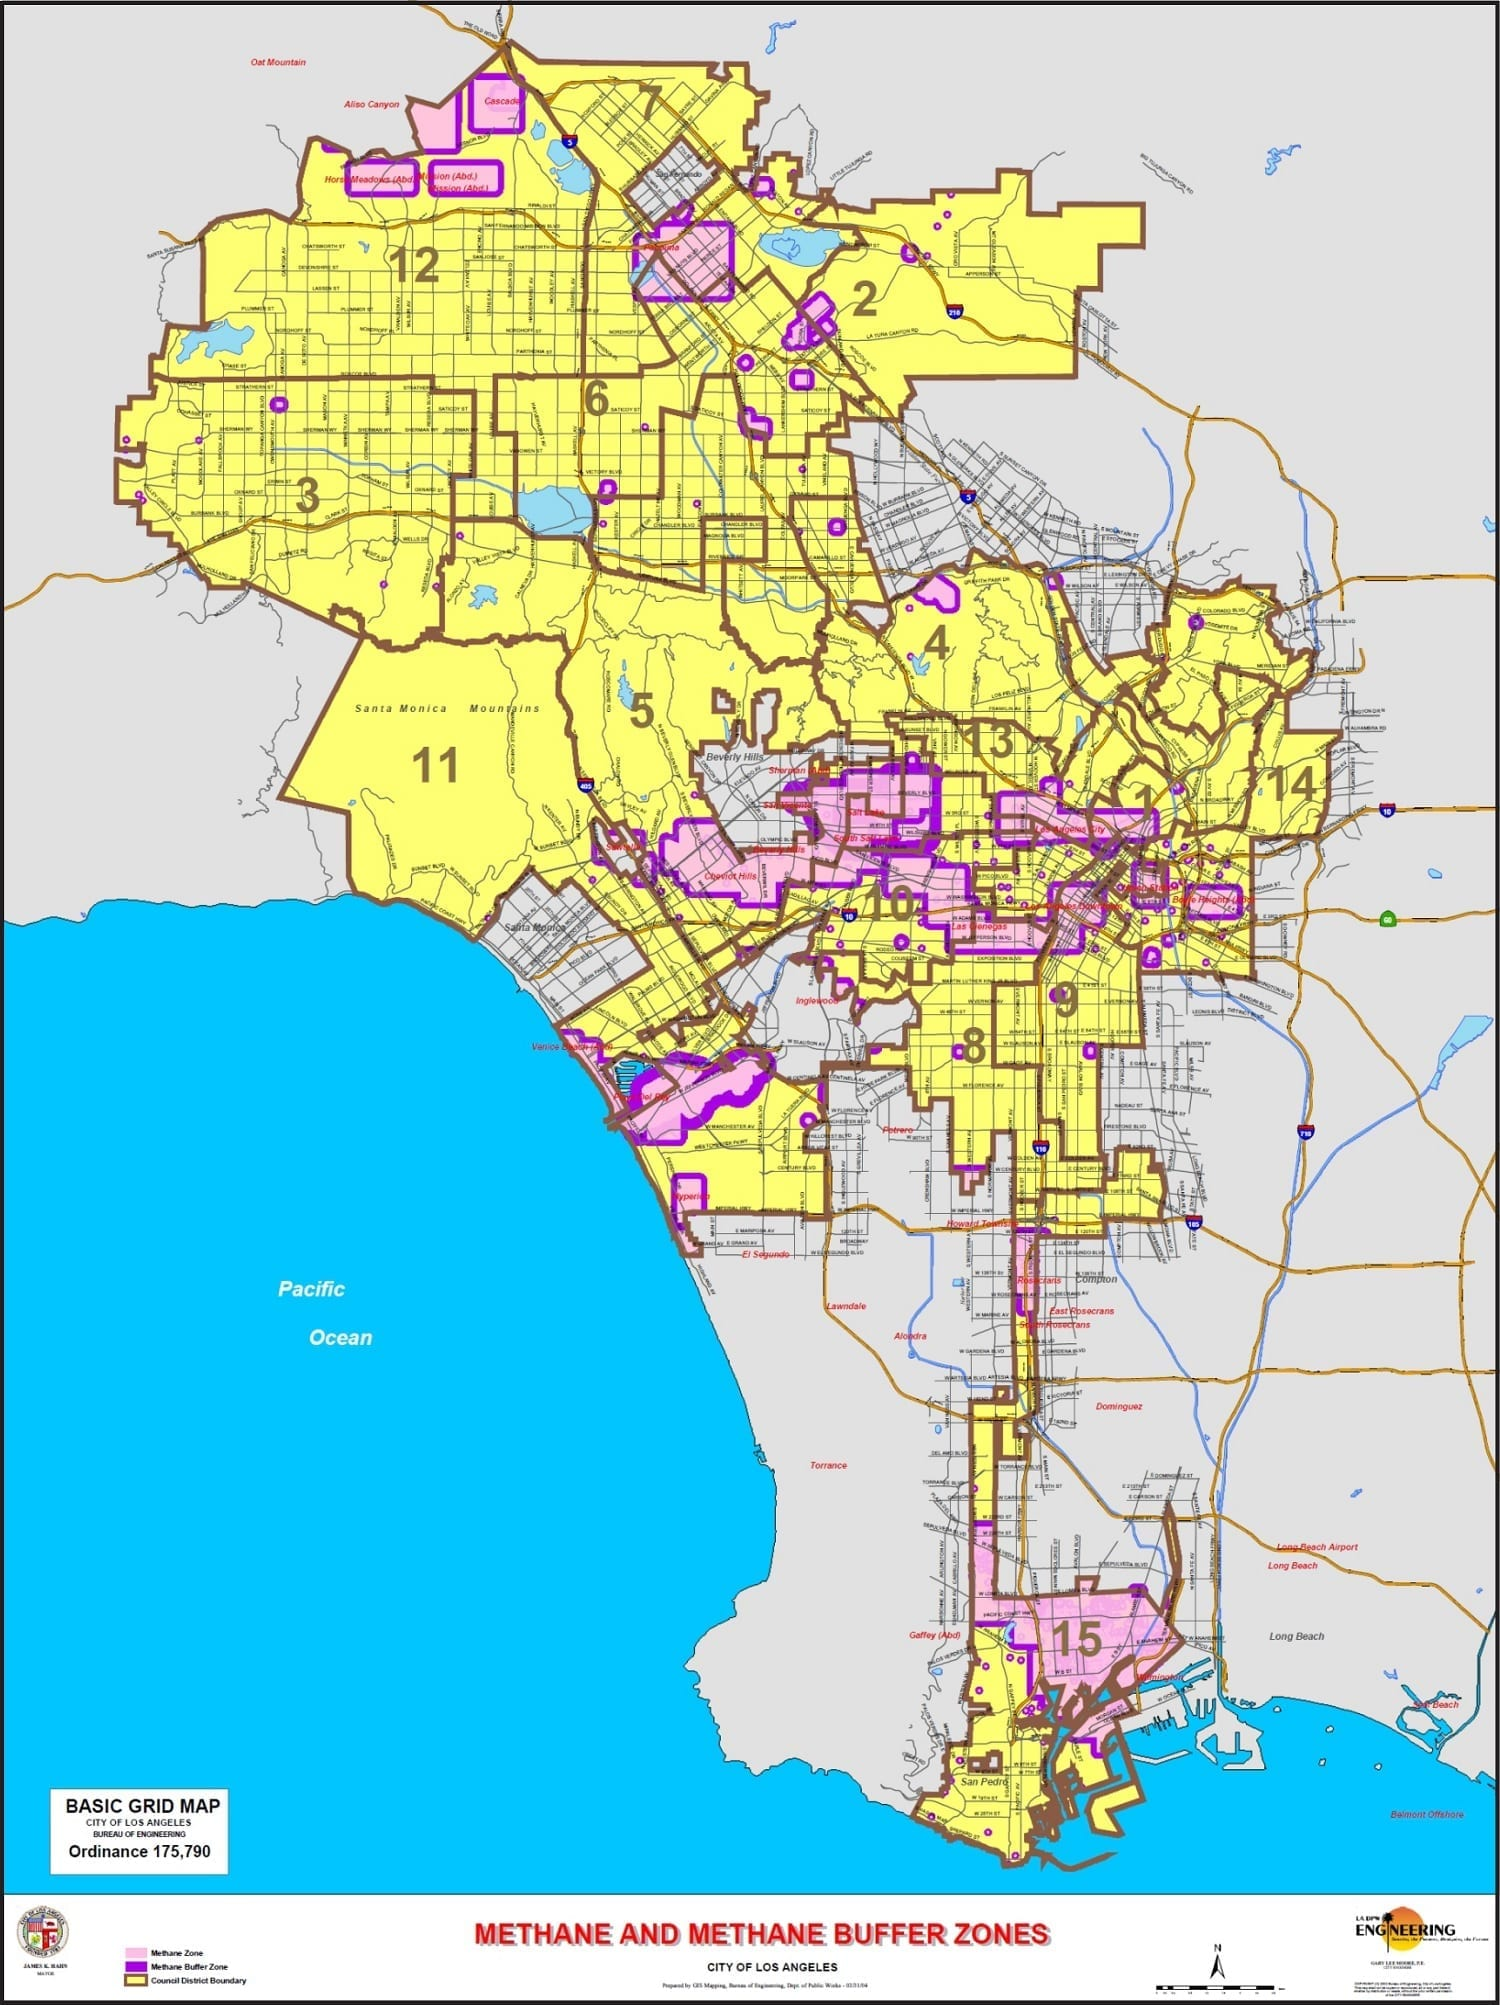 Los angeles methane zones map geo forward inc for In the city of la